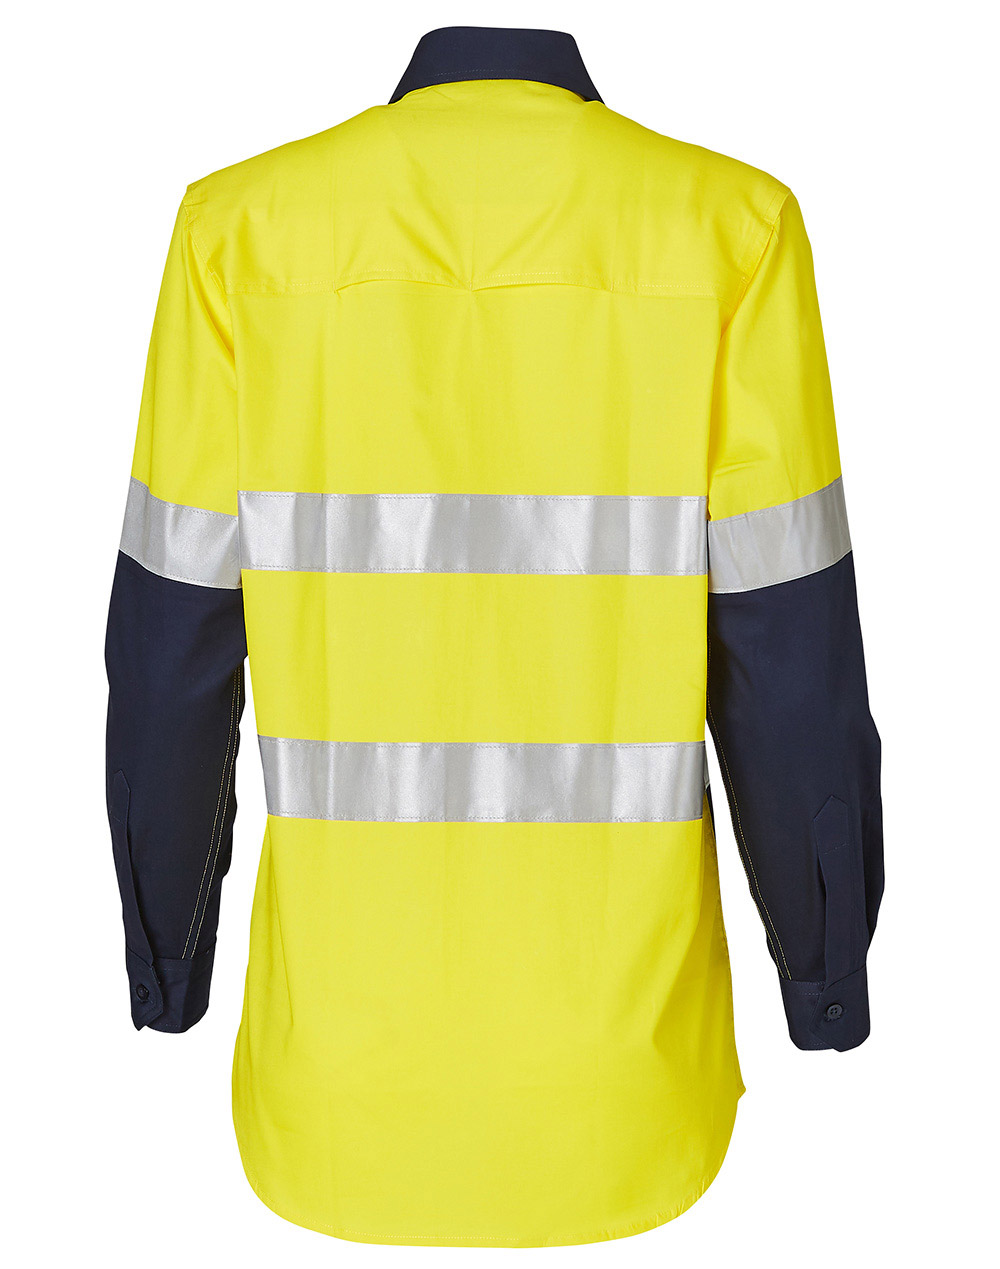 https://s3-ap-southeast-1.amazonaws.com/ws-imgs/WORKWEAR/SW65_YellowNavy_Back.jpg